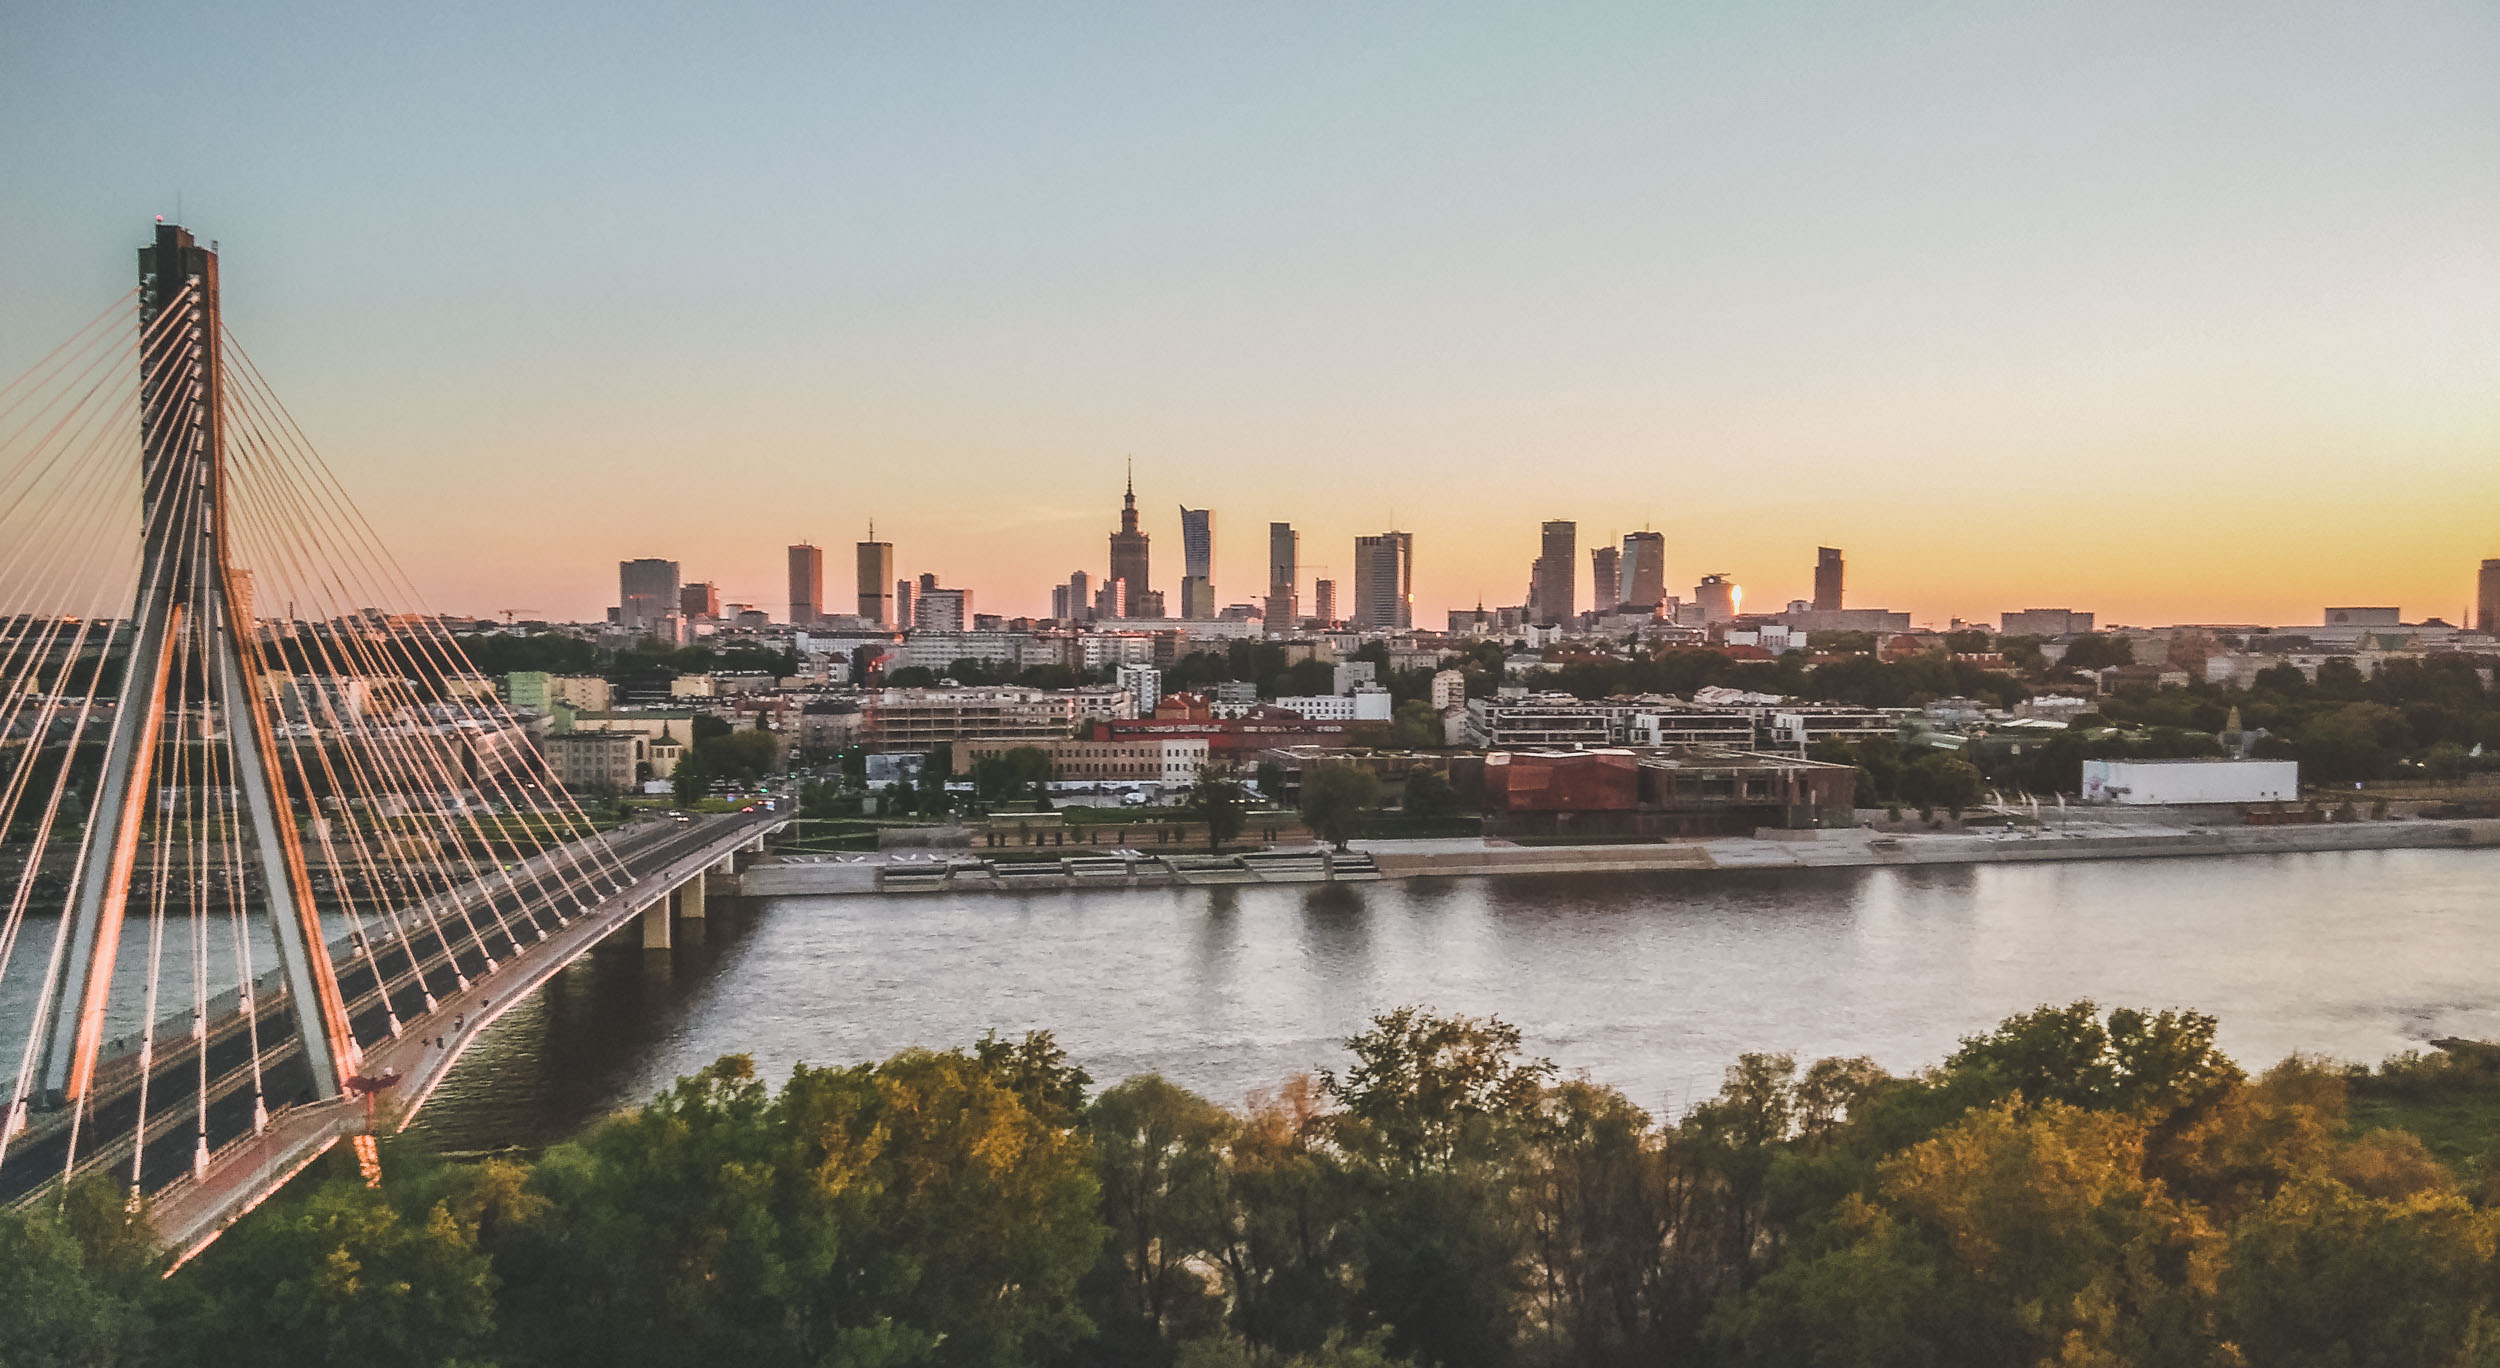 Warsaw from the drone